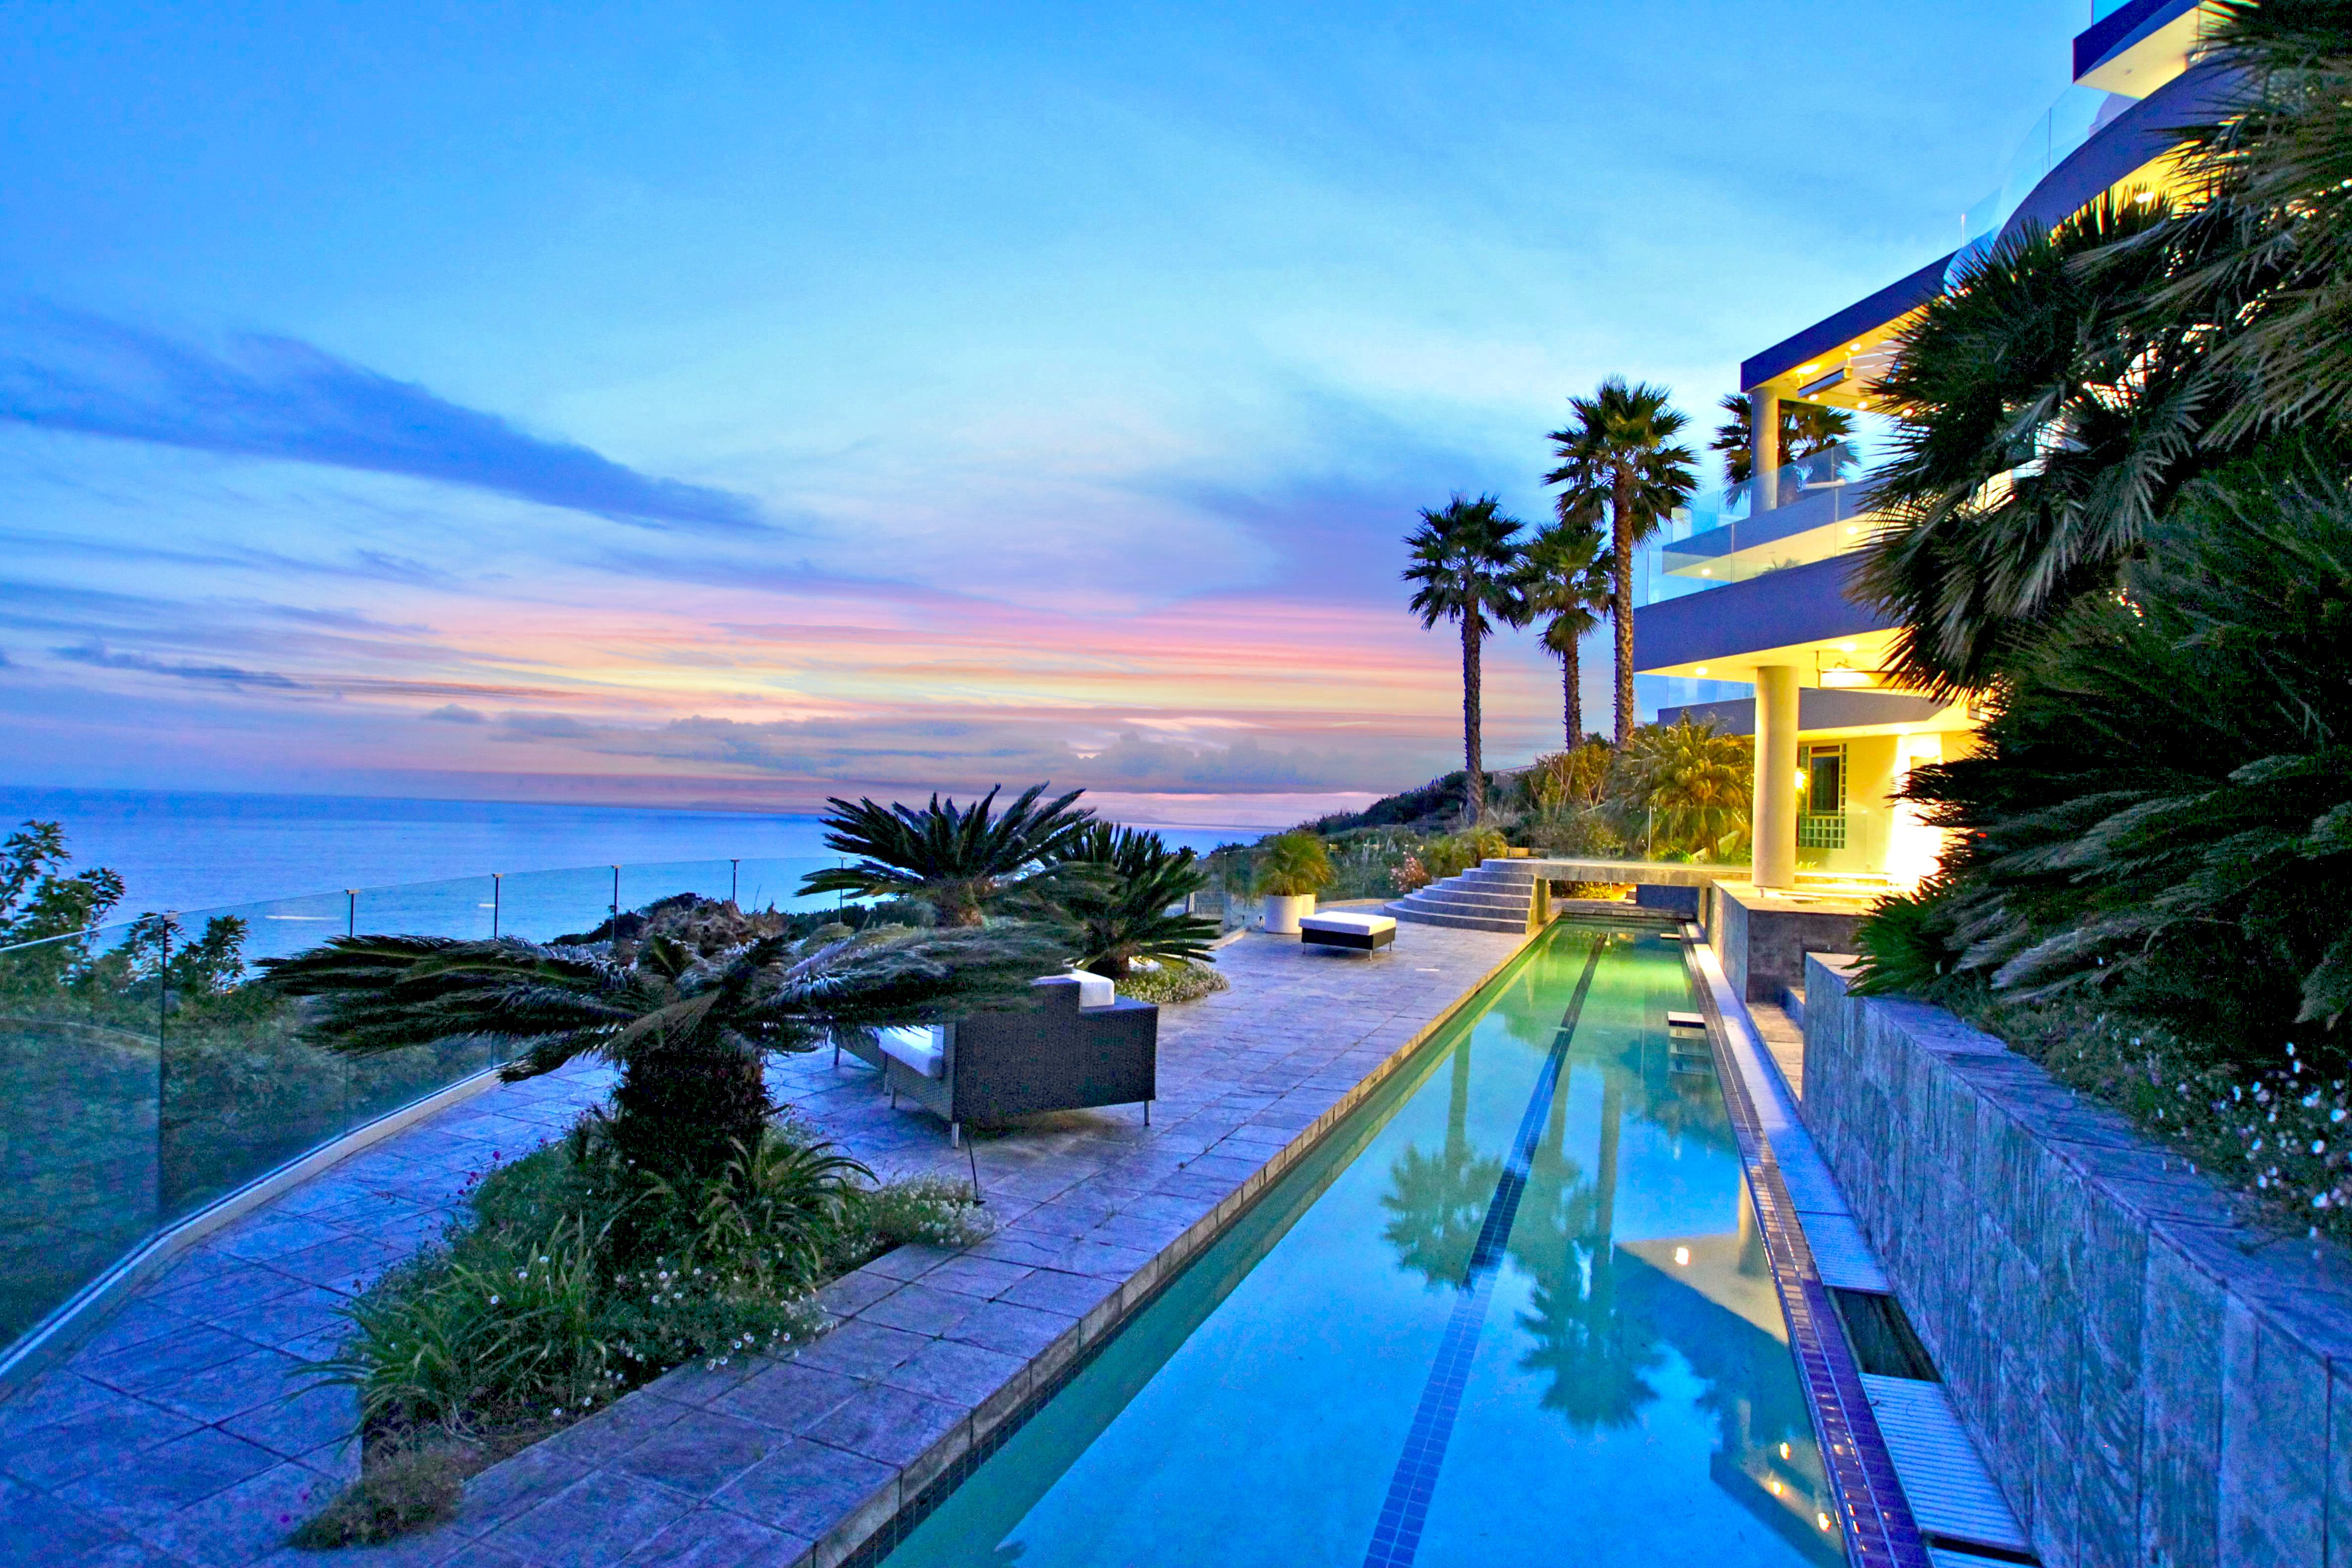 Excusive mystic hills home laguna beach ca luxury for Laguna beach luxury real estate